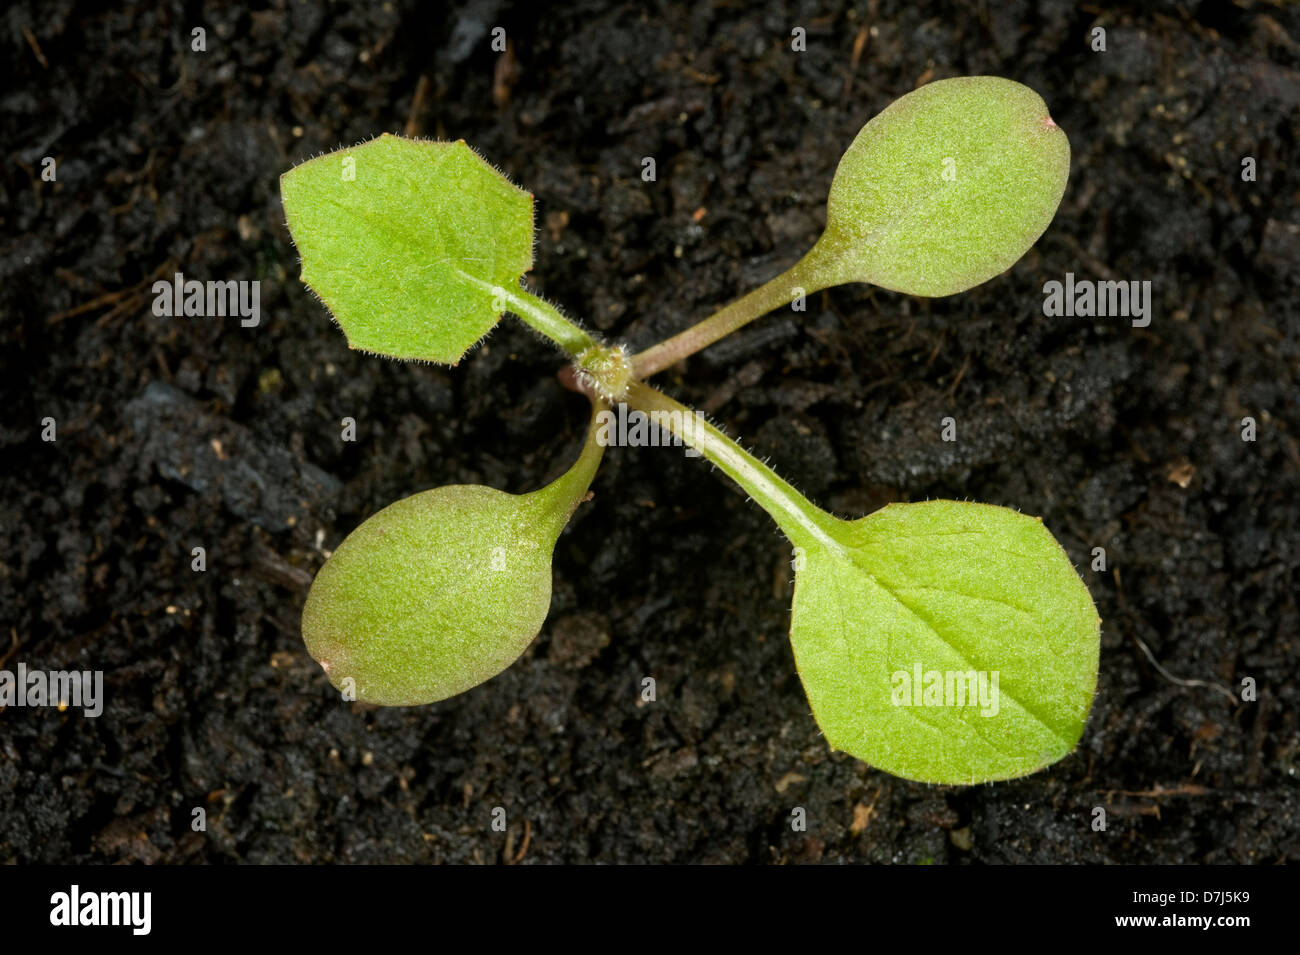 Nipplewort, Lapsana communis, seedling with one true leaf - Stock Image